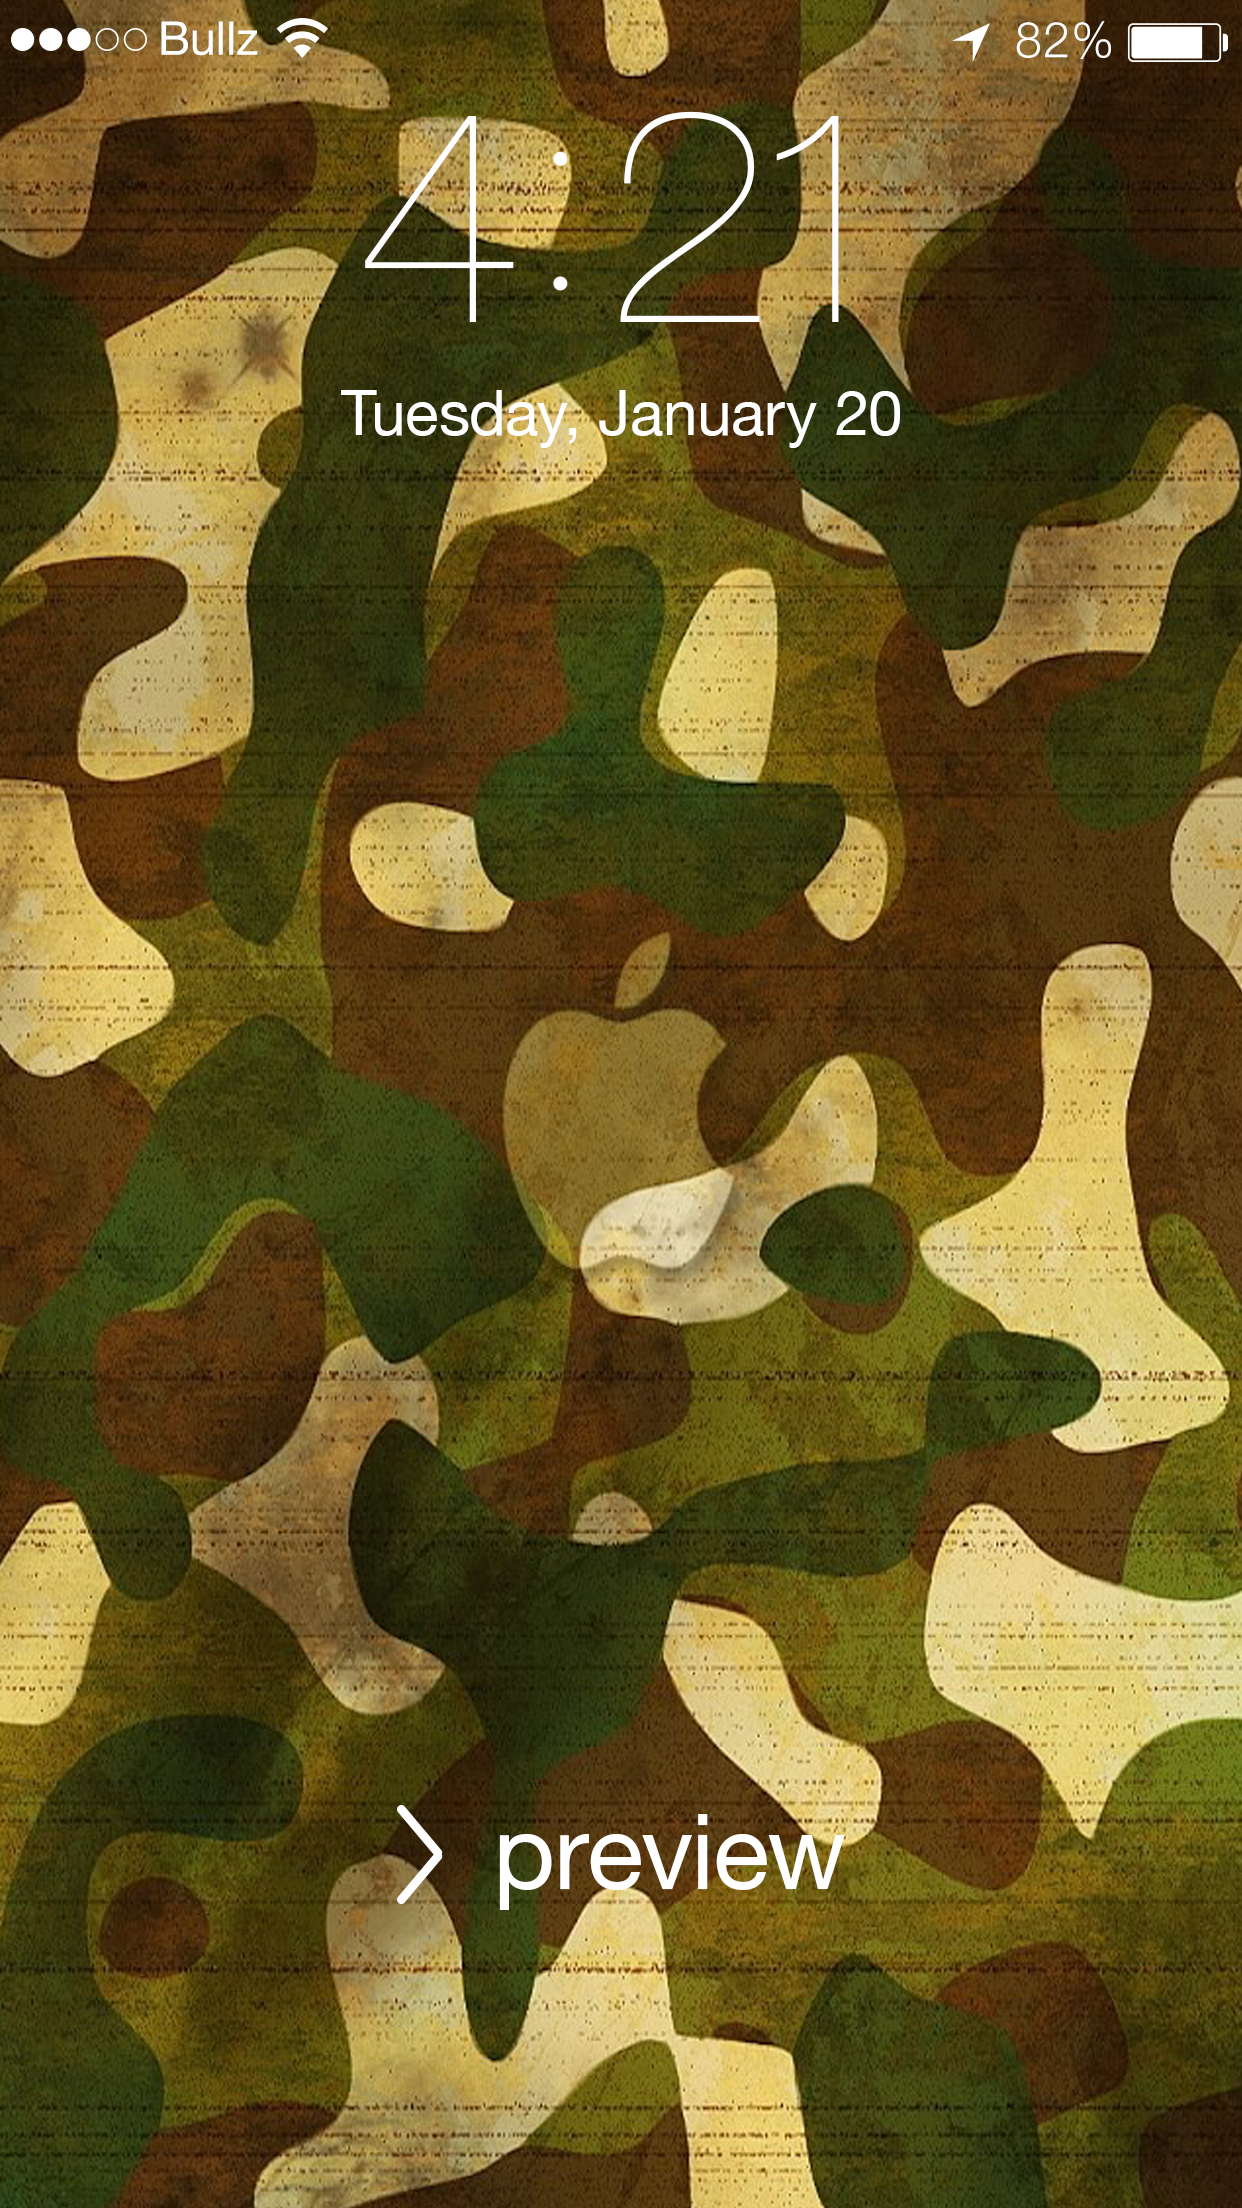 Camouflage, 08.10.15 | Images PC Gallery, 3.61 Mb